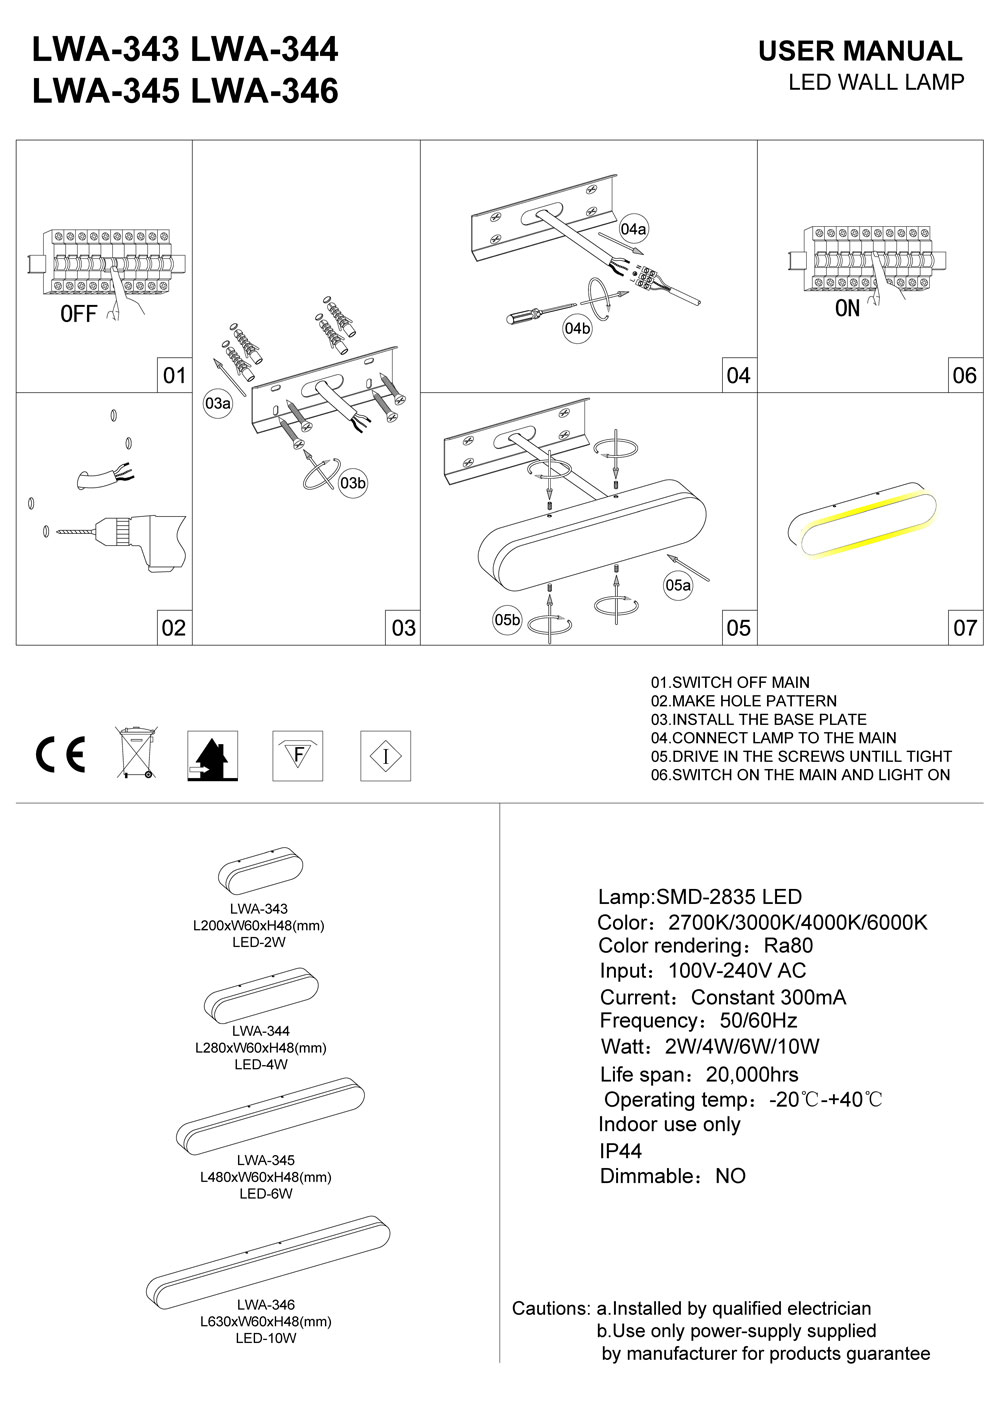 LWA-343-LWA-344-LWA-345-LWA bathroom wall light installation guide